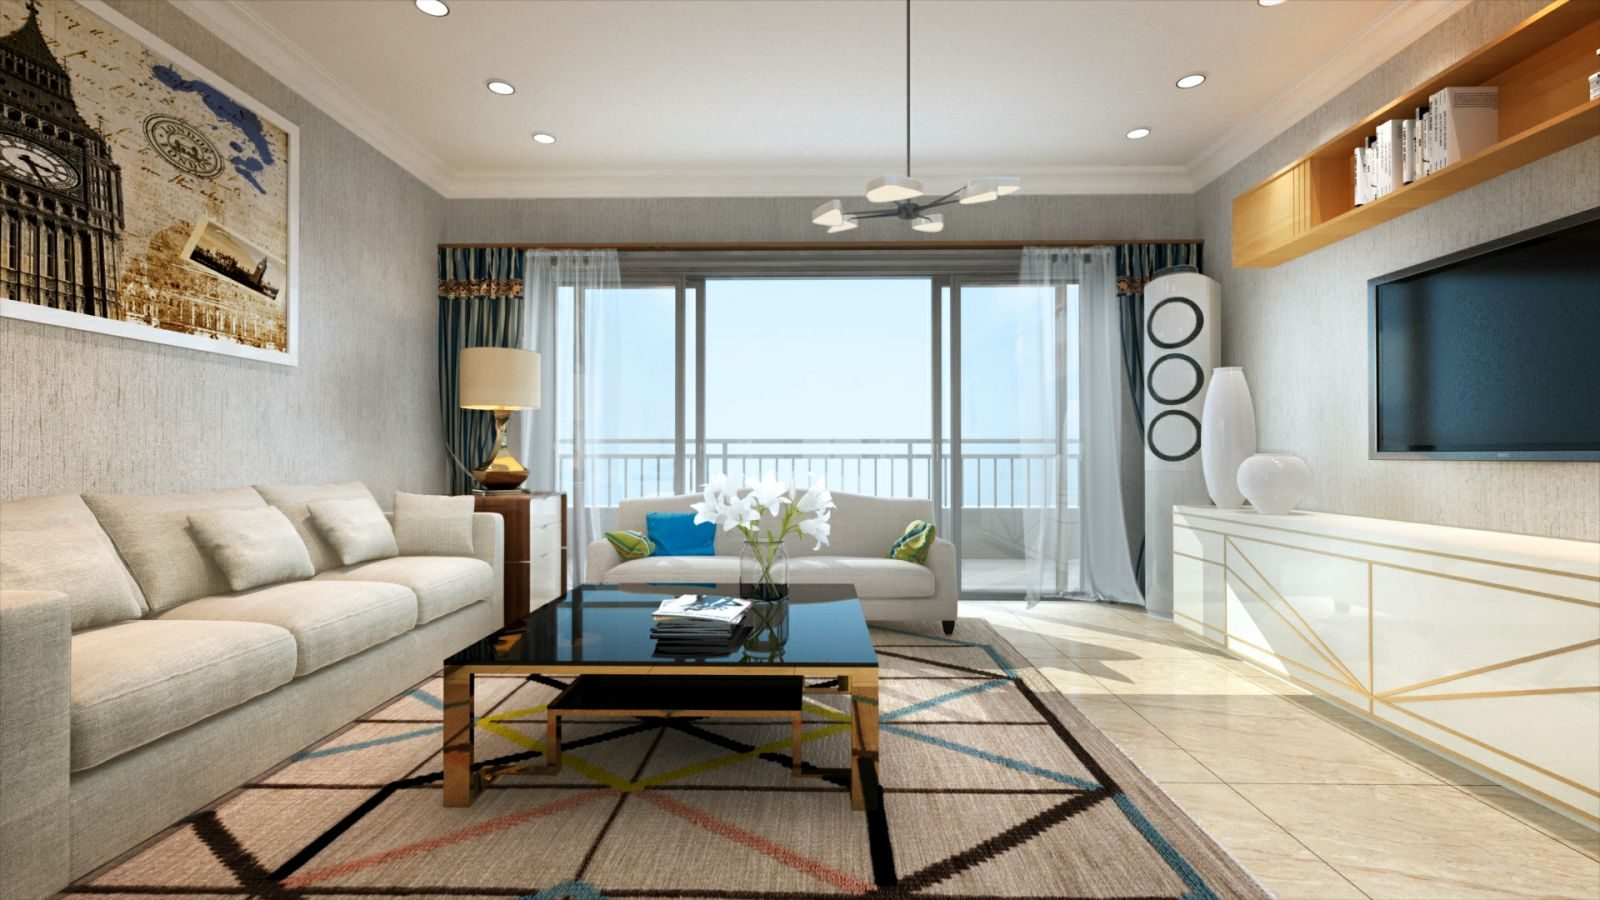 Architectural_Visualization_3D_Rendering_AIMIRCG.COM_100823